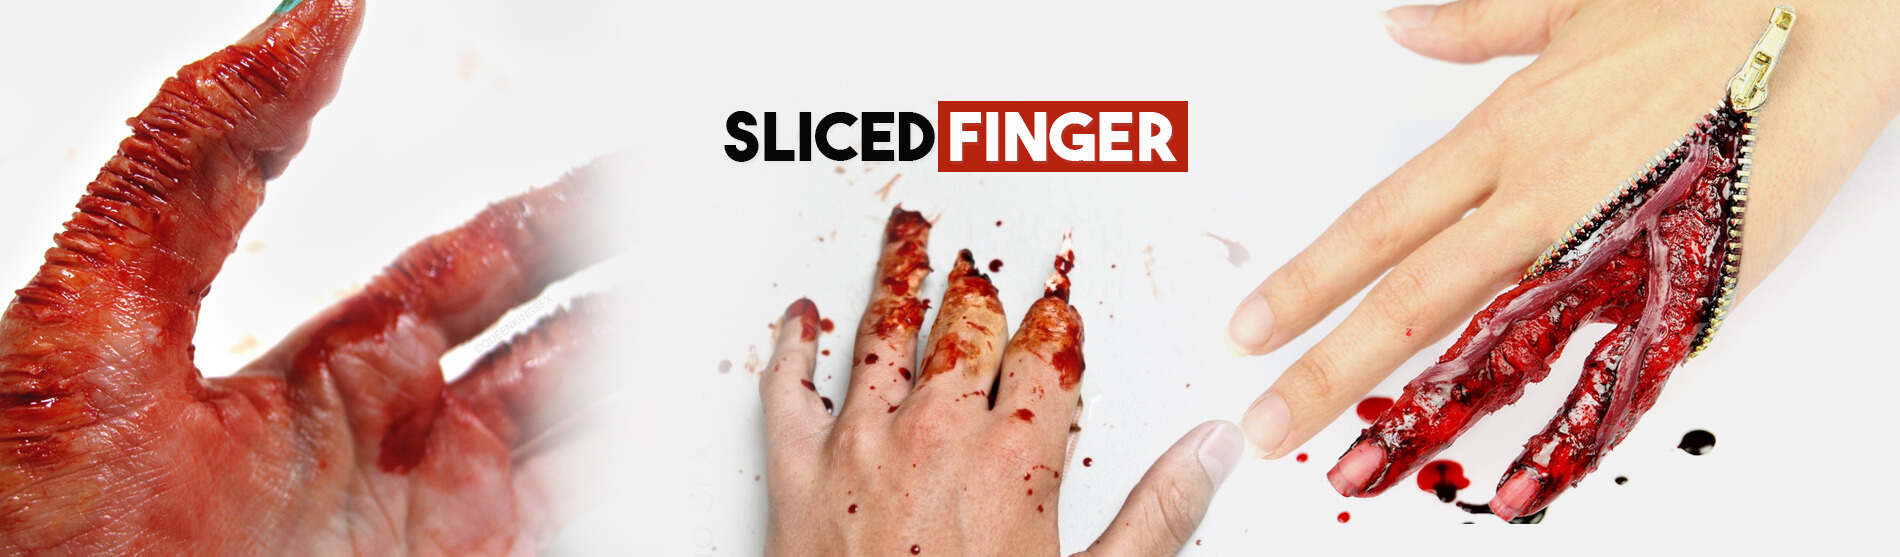 Halloween-Sliced-Finger